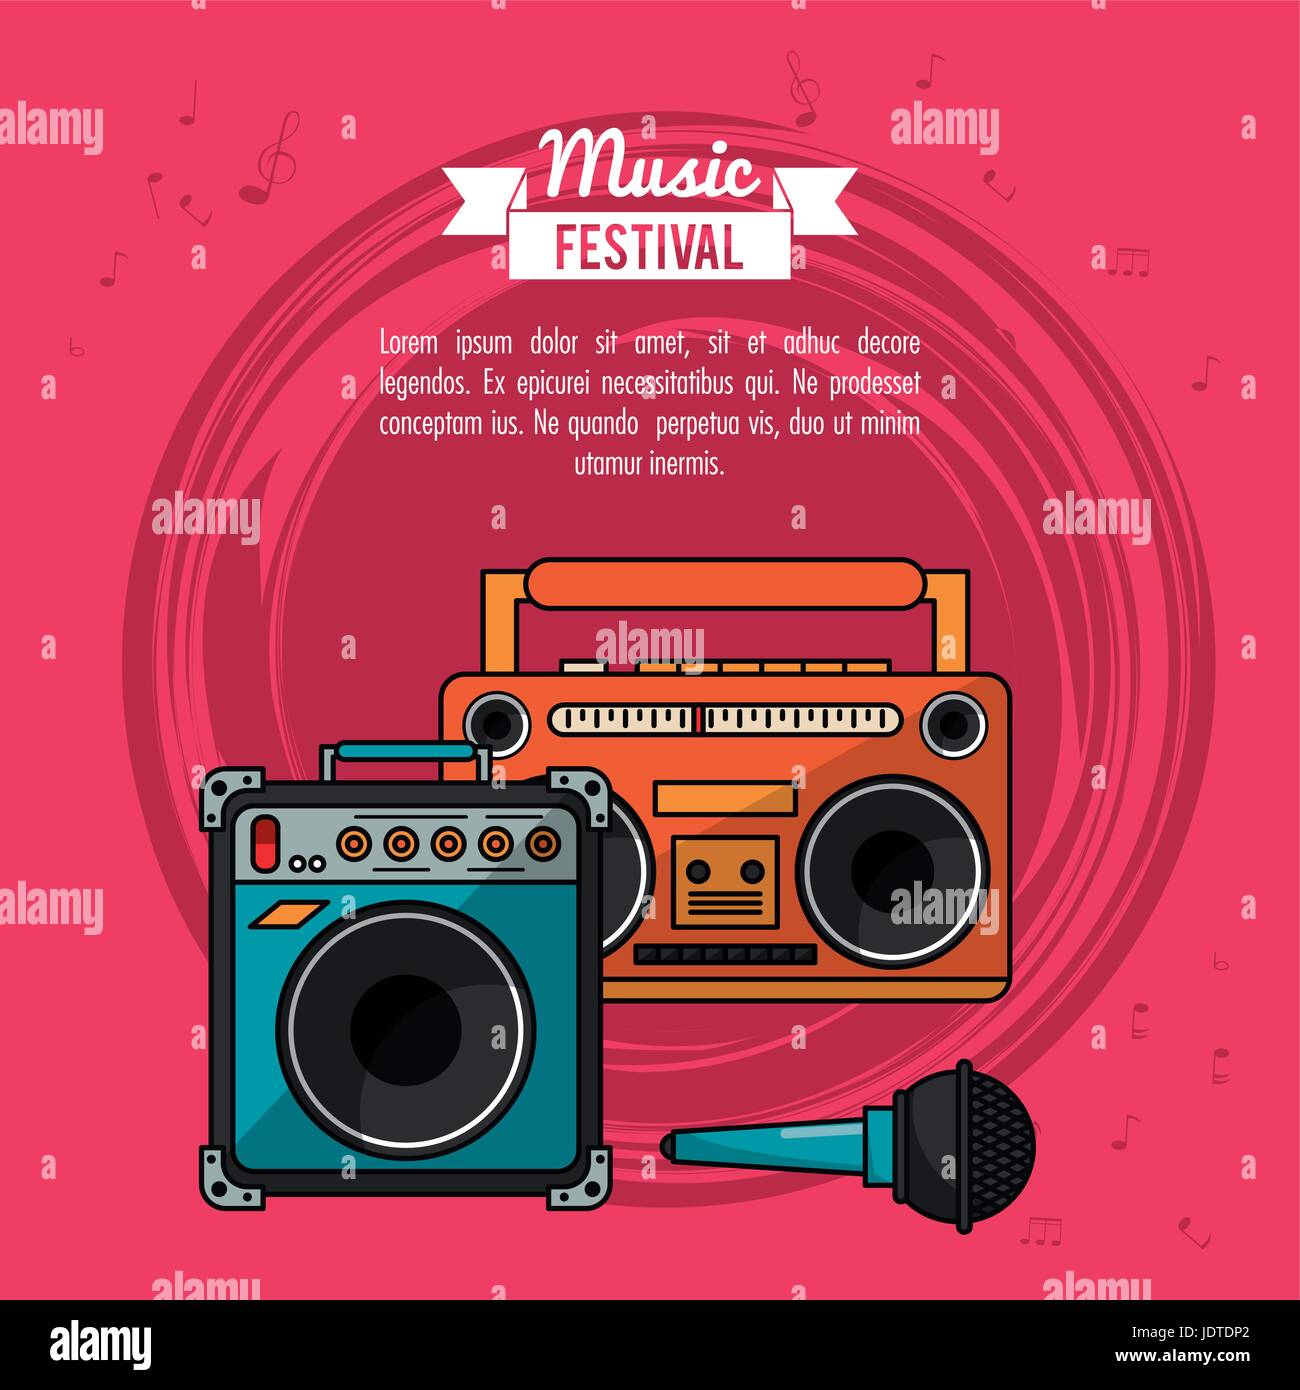 poster music festival in magenta background with cassette tape player and speaker box and microphone - Stock Image